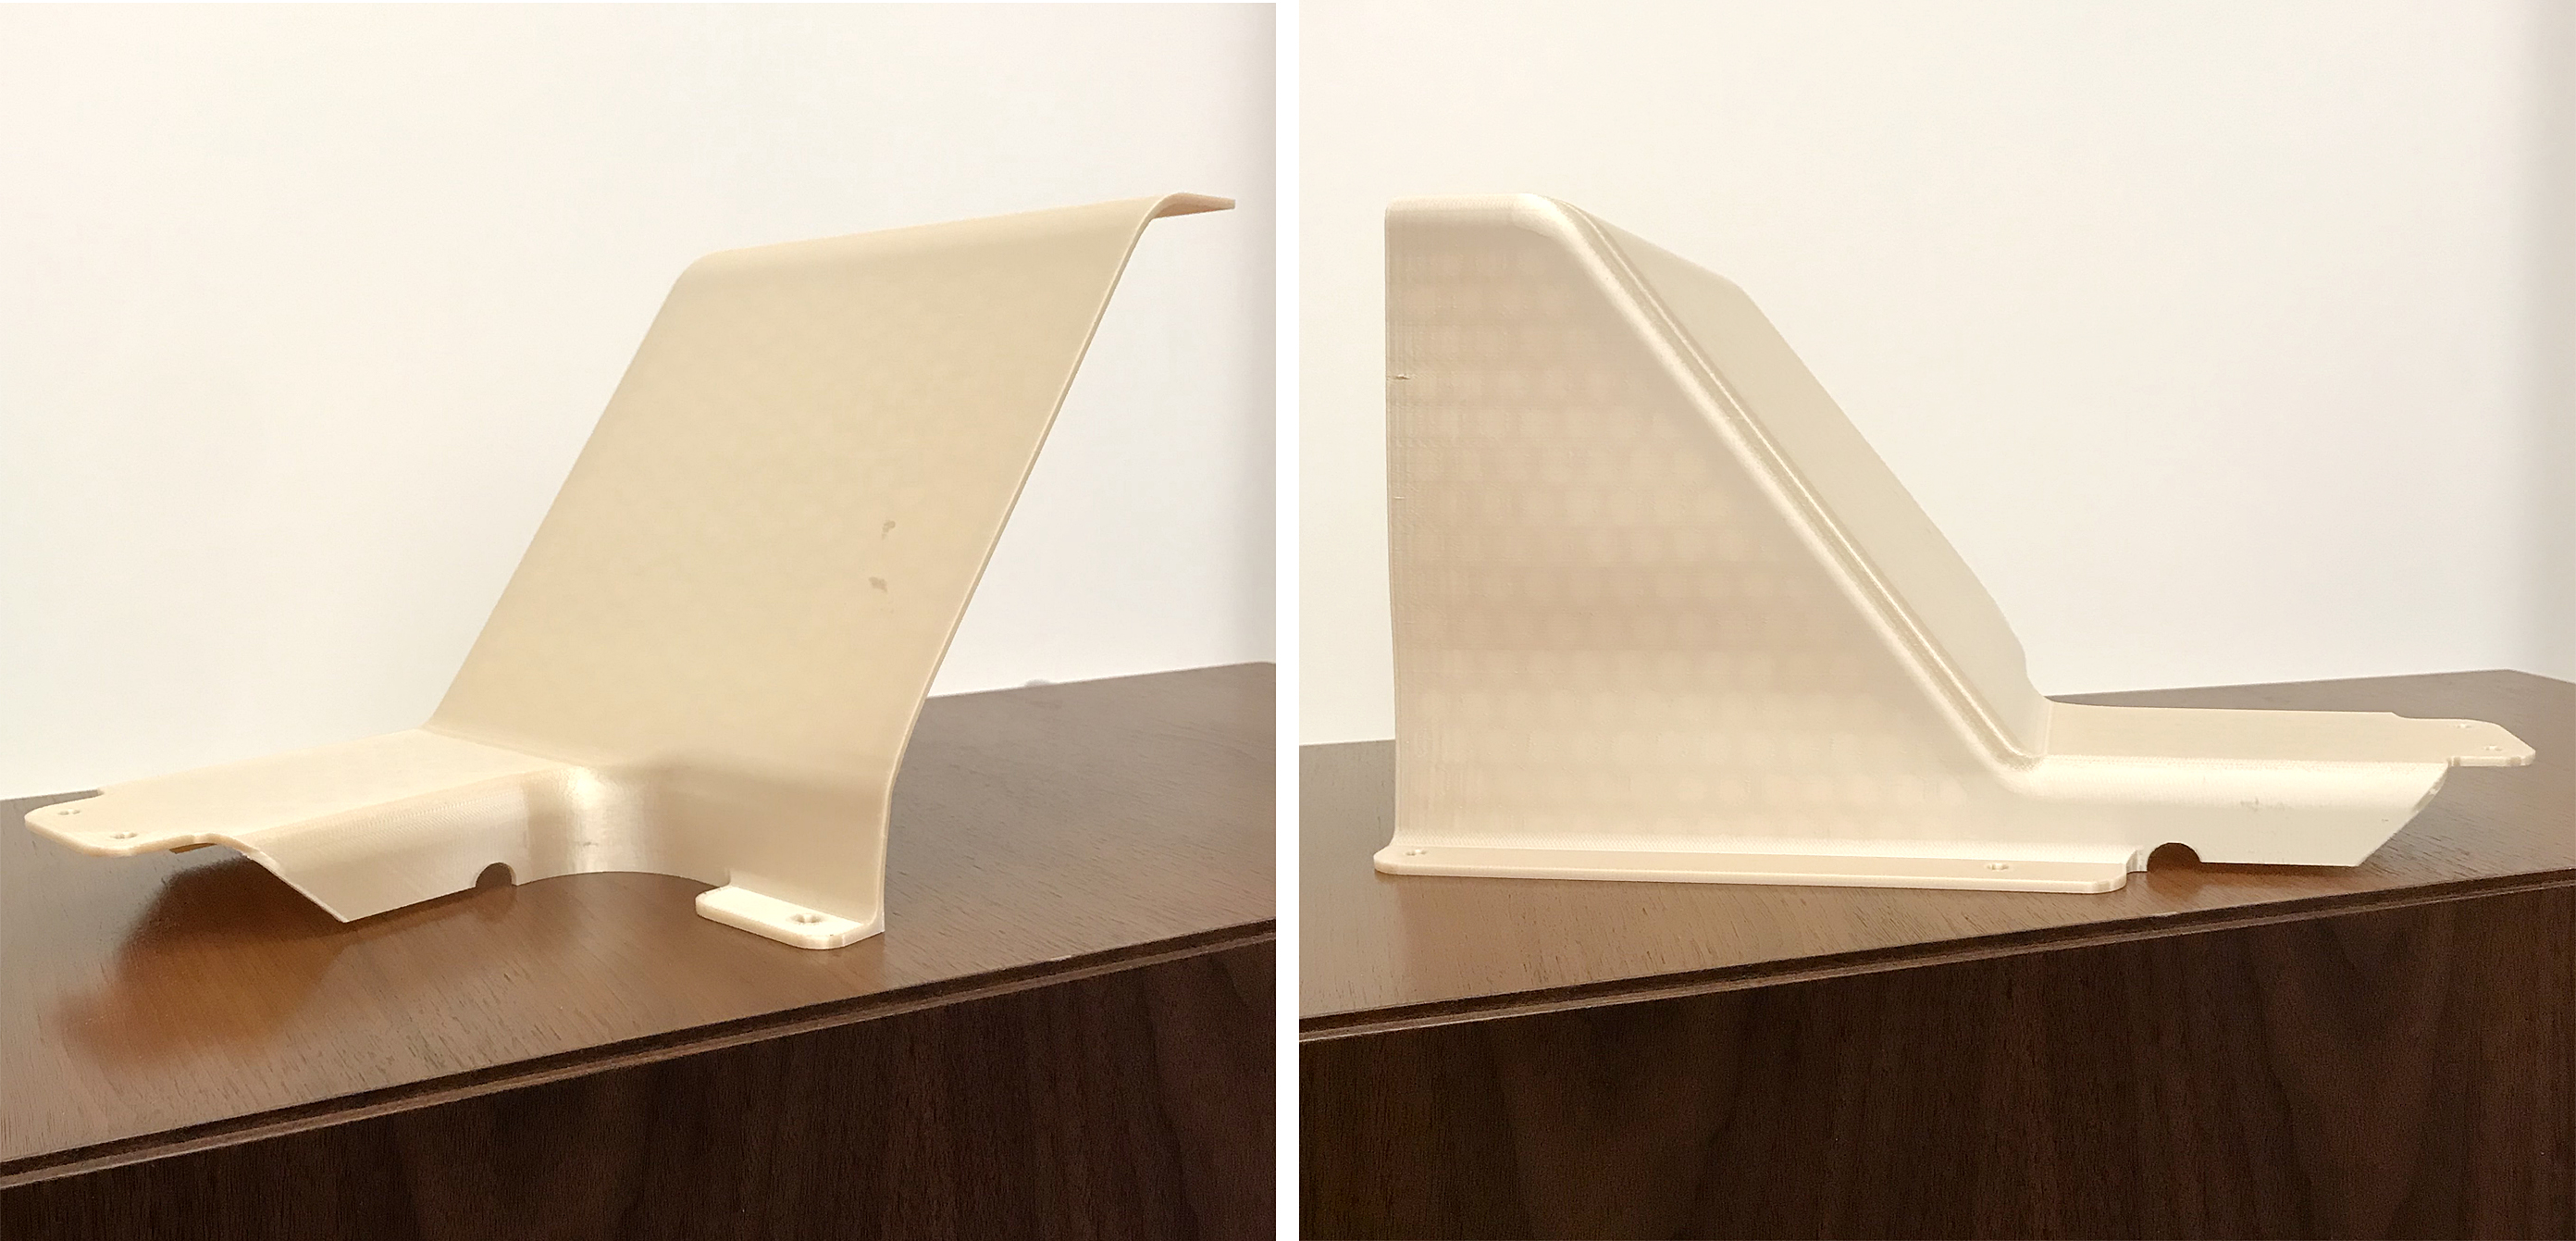 Remarkable The Air Forces 10 000 Toilet Cover The Washington Post Gmtry Best Dining Table And Chair Ideas Images Gmtryco